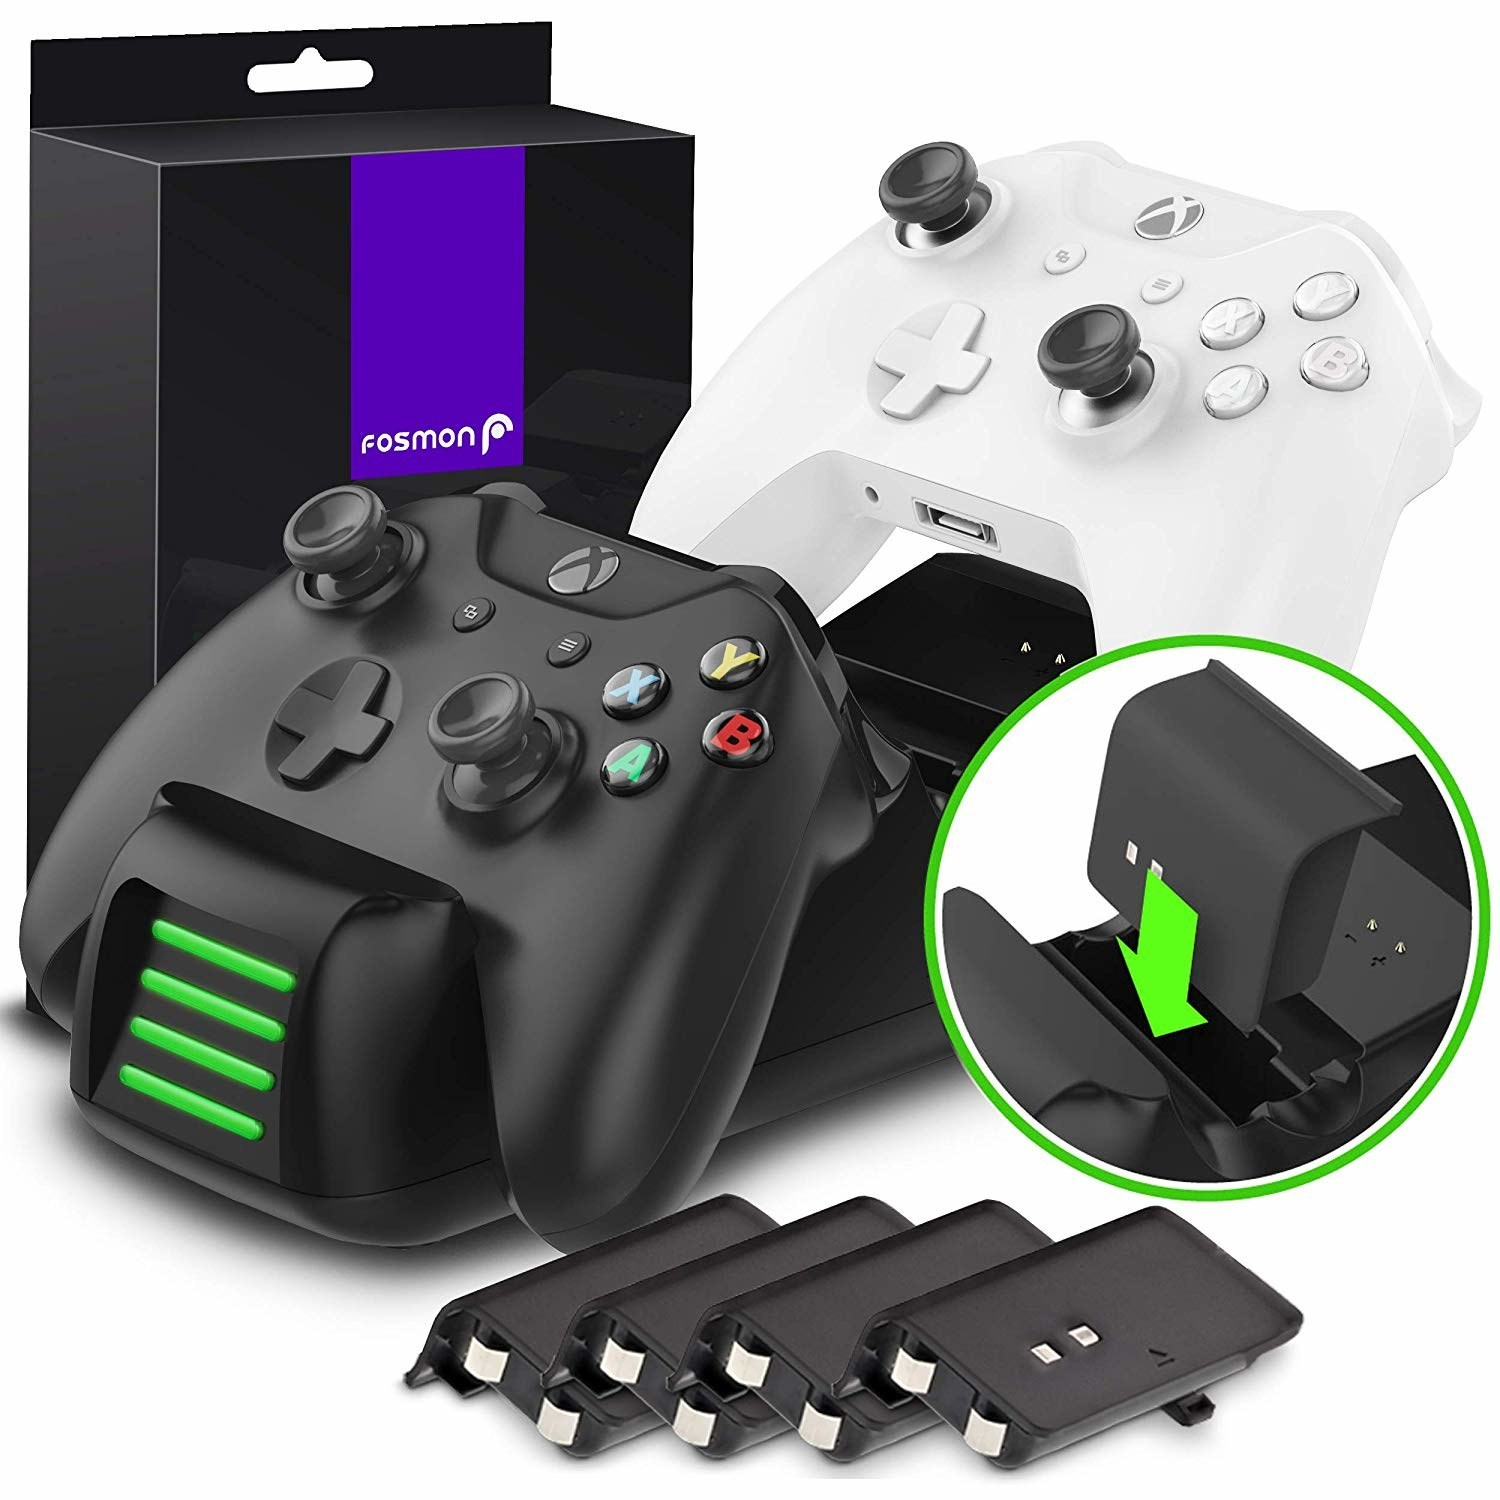 Fosmon's new Quad Pro Charging Station for Xbox One Controllers.